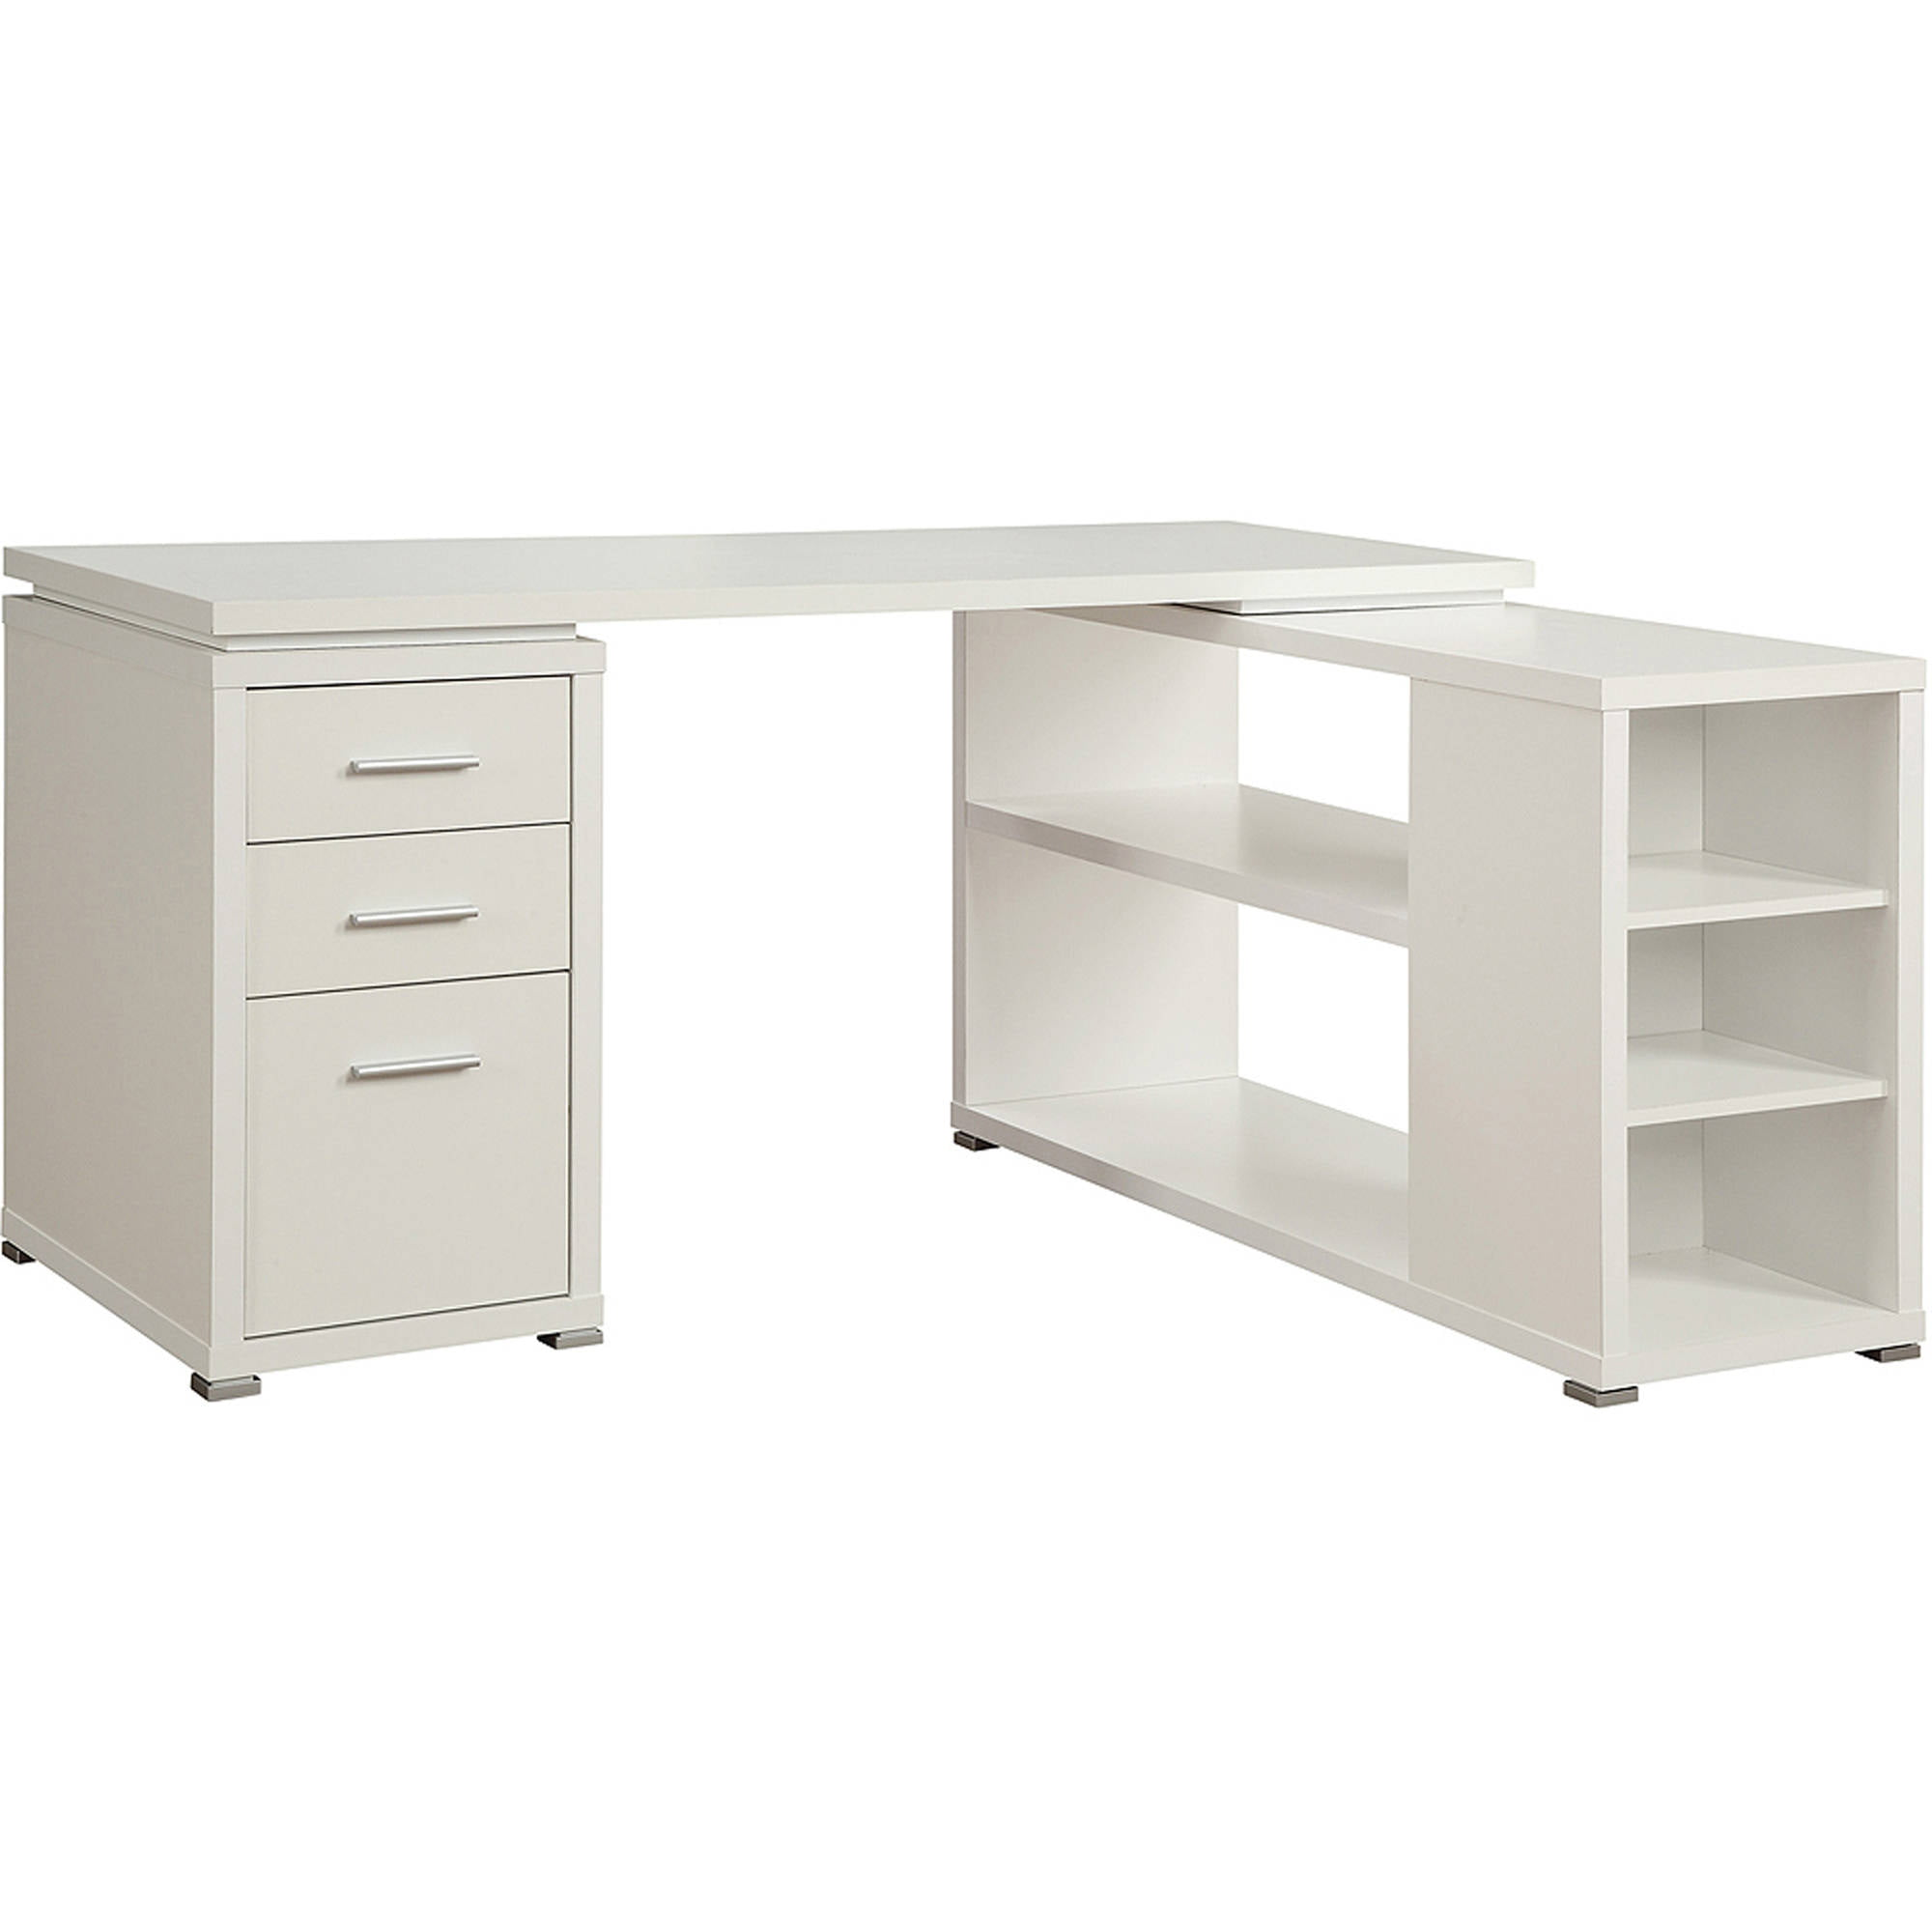 office desk walmart. Coaster Yvette Collection L-Shaped Reversible Desk, Multiple Colors -  Walmart.com Office Desk Walmart